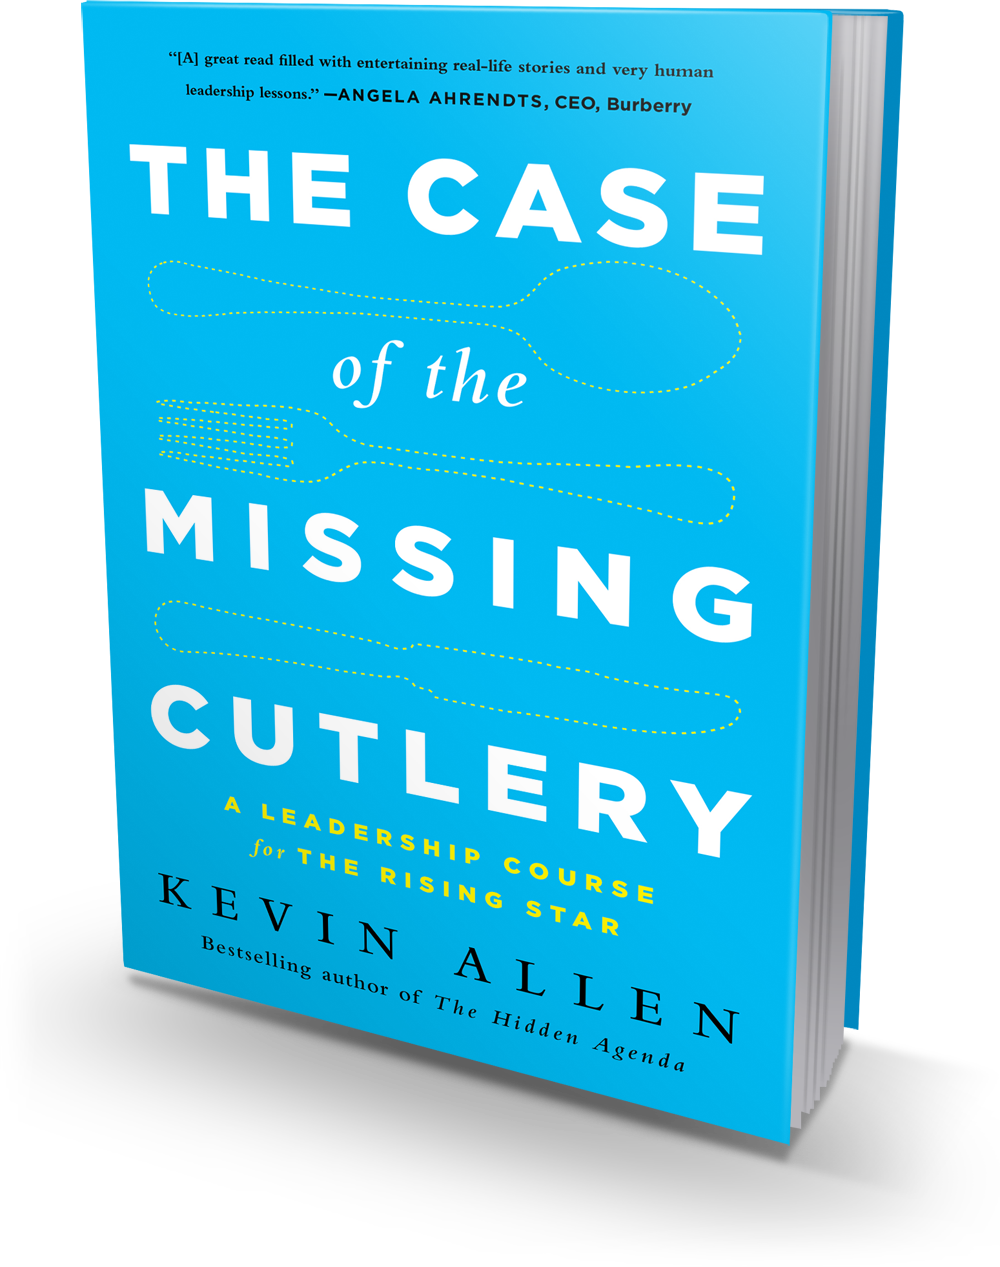 The Case of the Missing Cutlery book cover